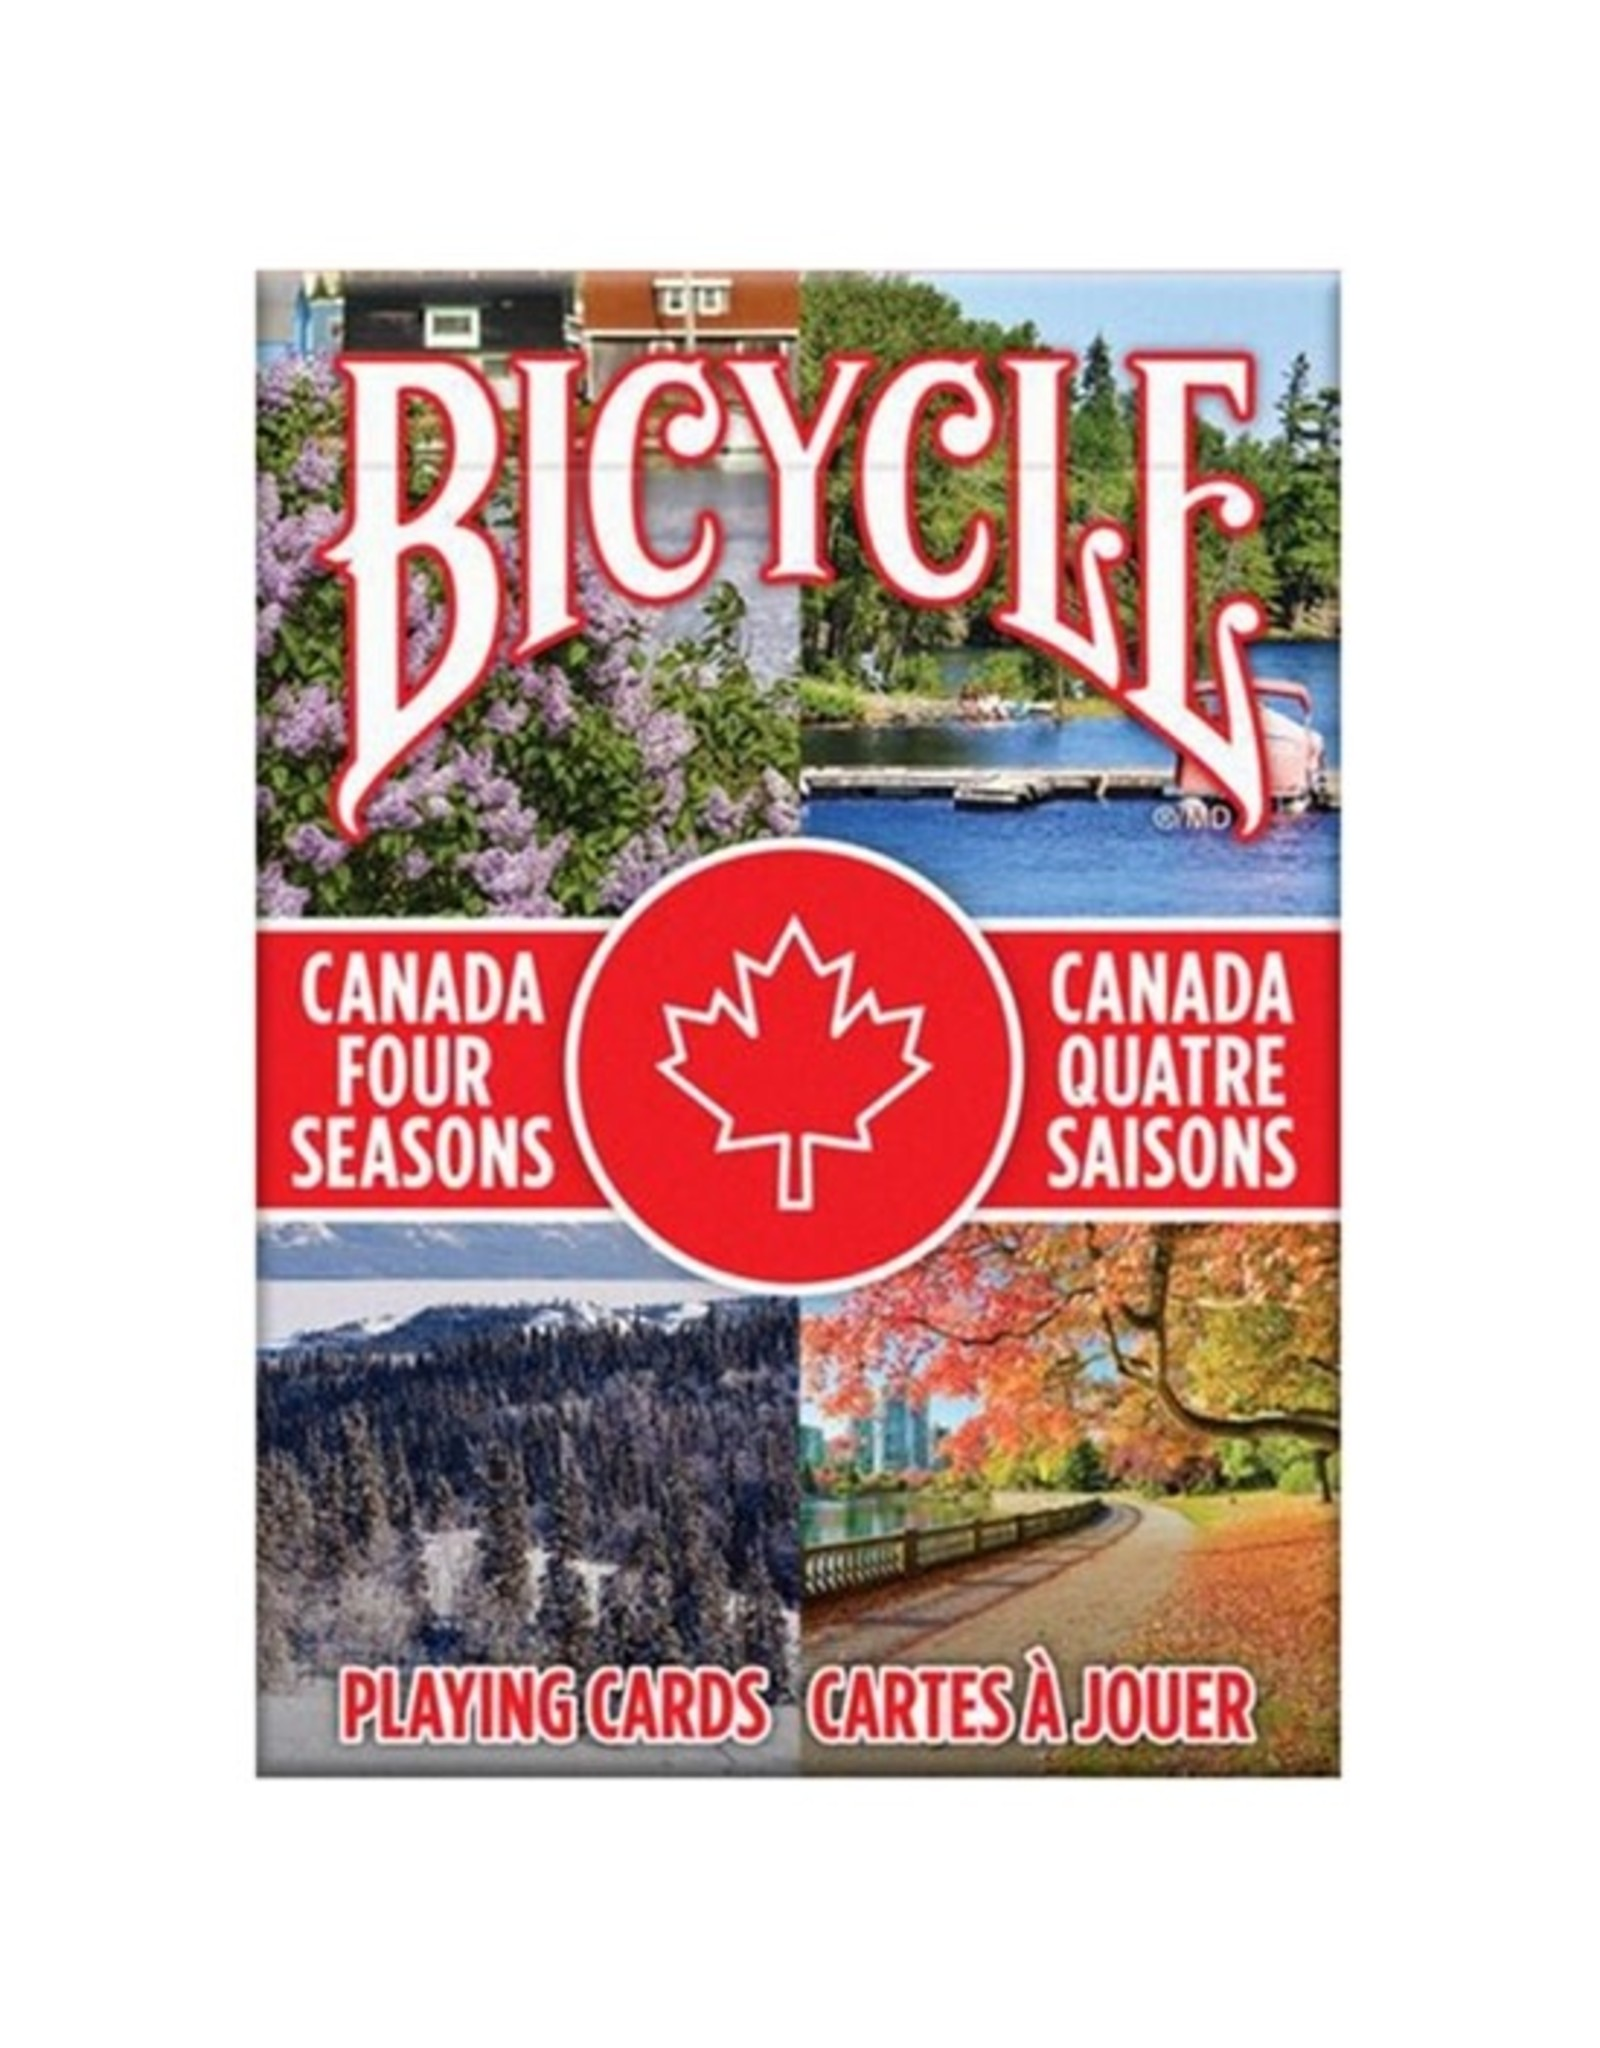 Bicycle Canada Four Seasons Cards